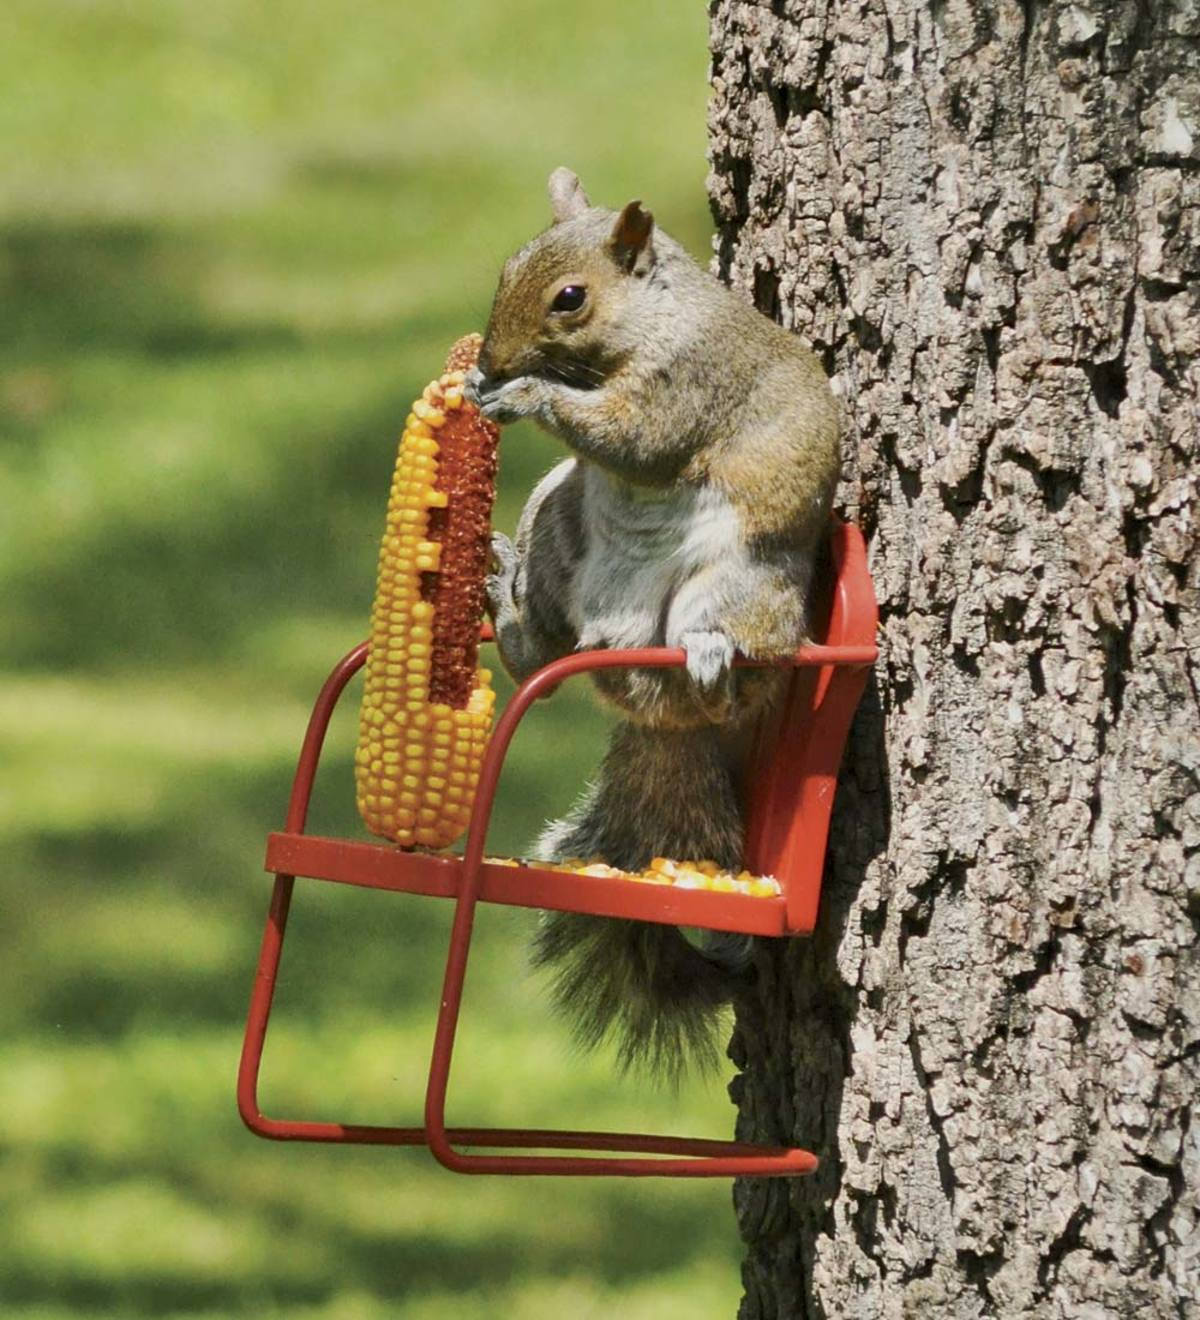 Red Retro Metal Lawn Chair Squirrel Feeder